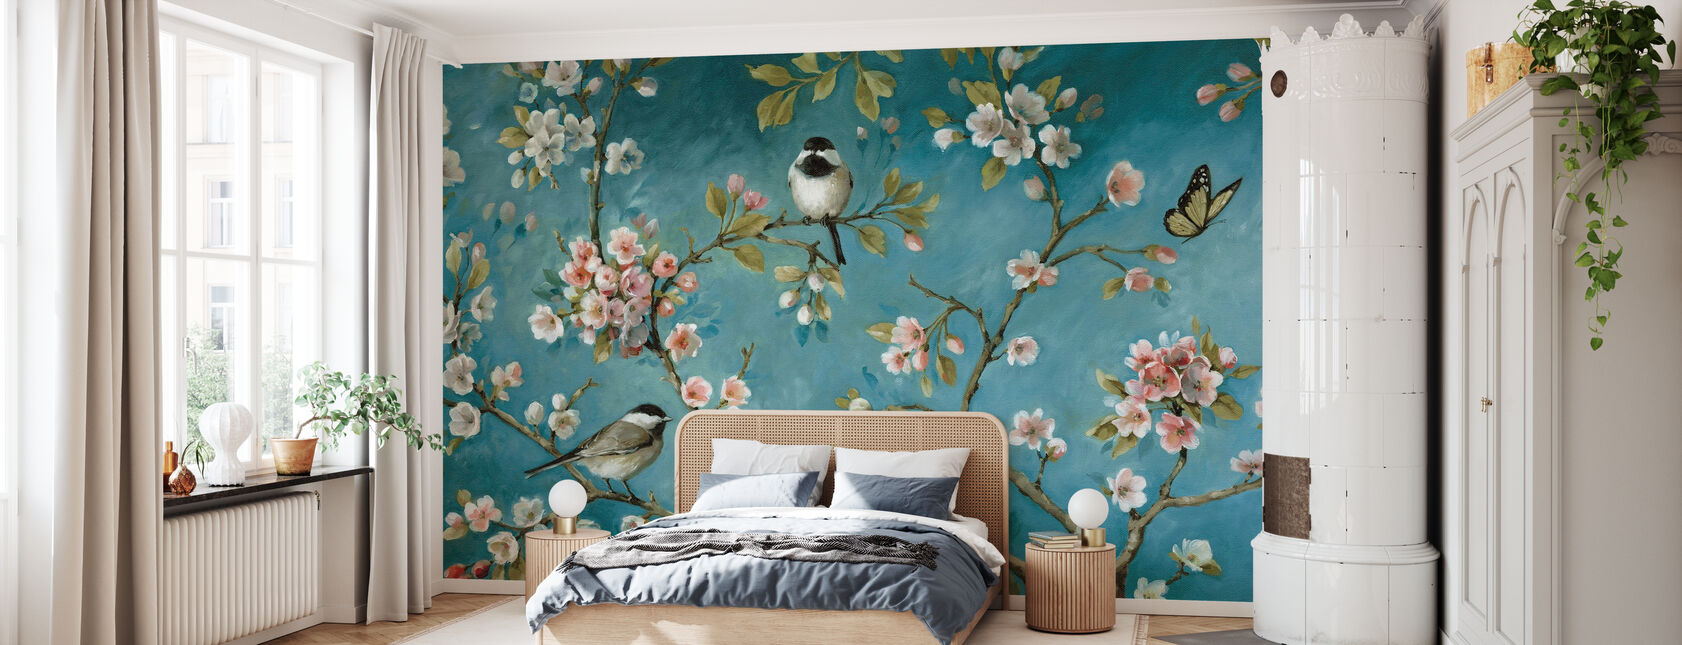 Blossom - Wallpaper - Bedroom